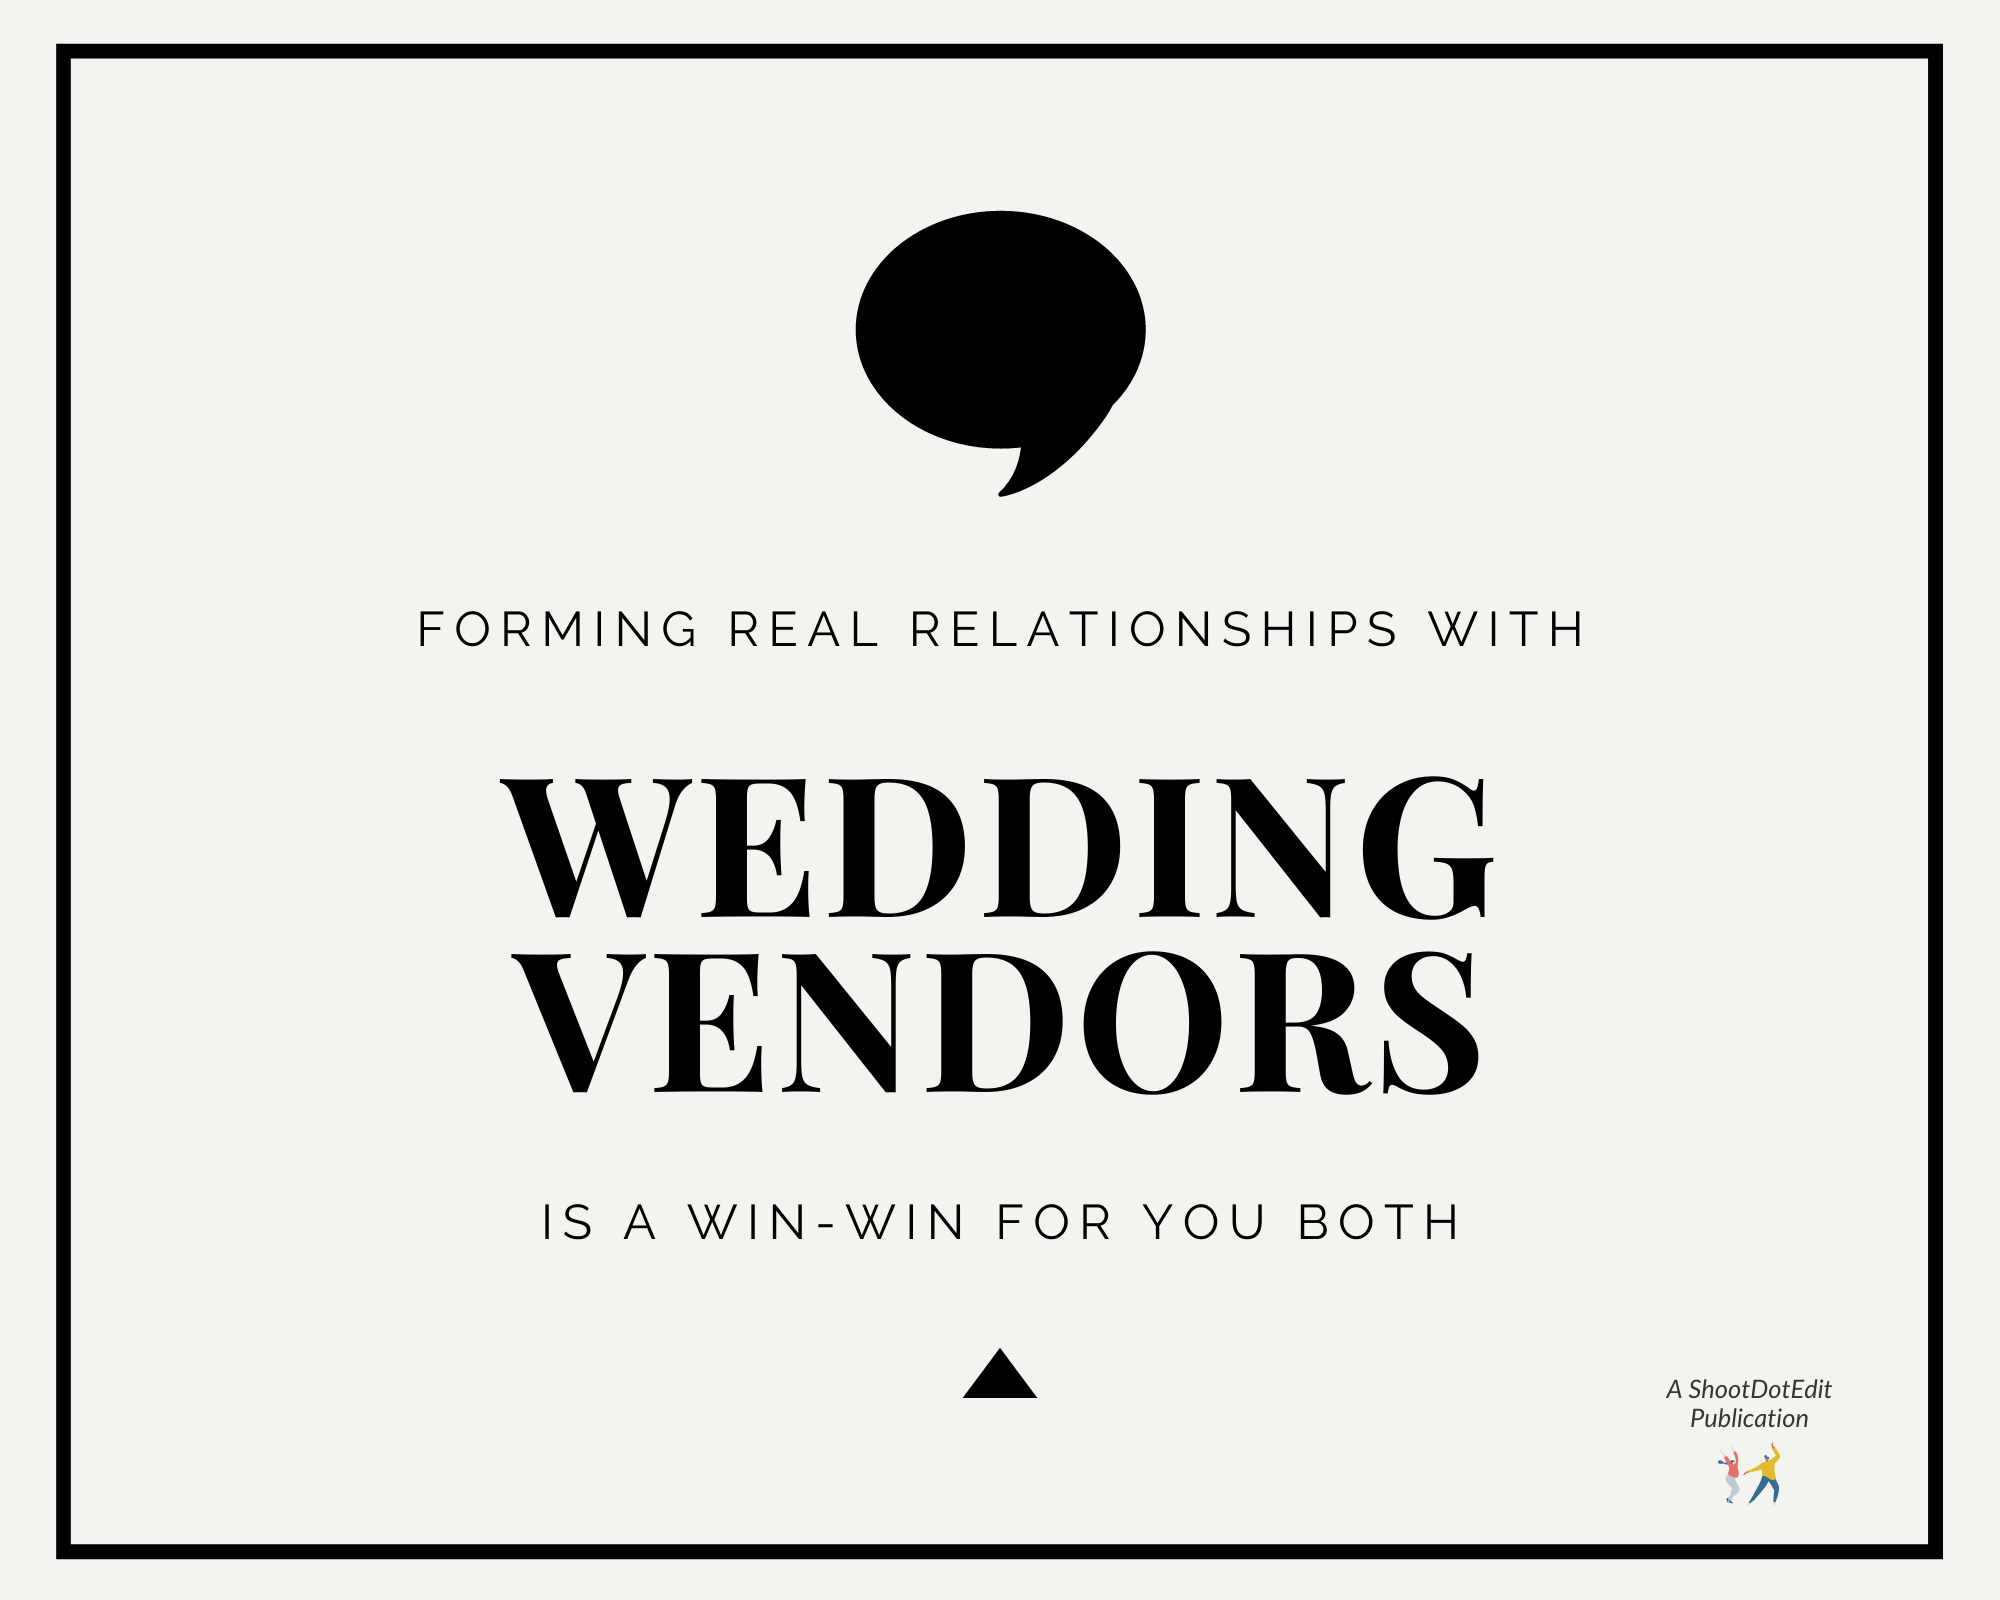 Infographic stating forming real relationships with wedding vendors is a win win for you both